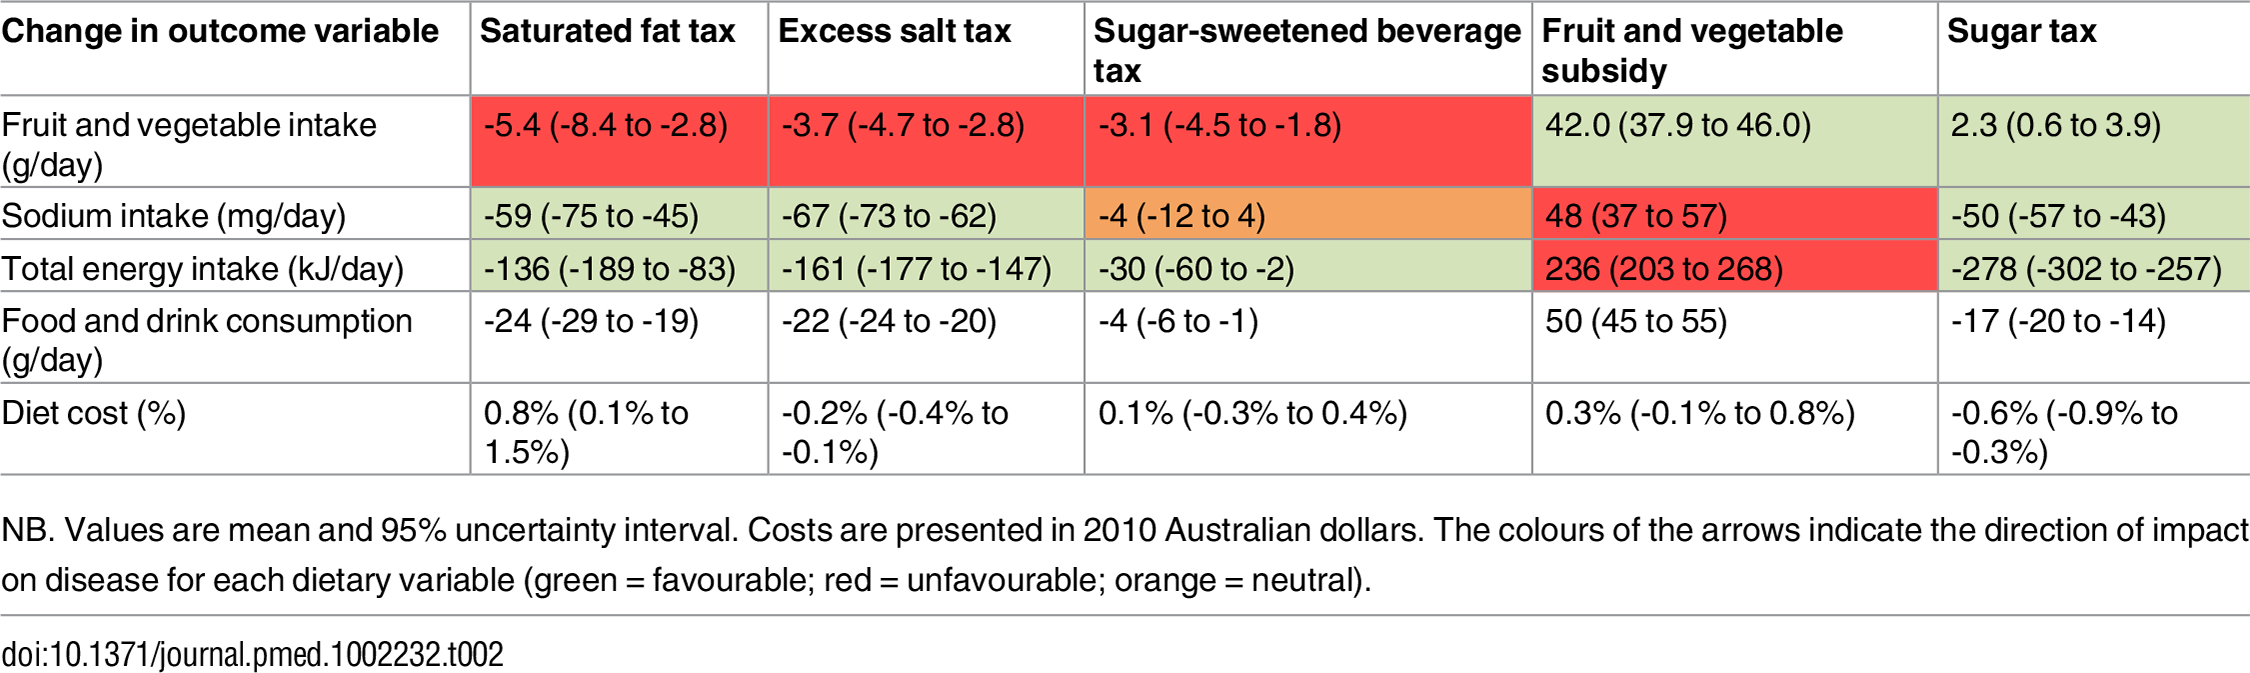 Change in dietary intake and diet cost with the individual tax and subsidy interventions.